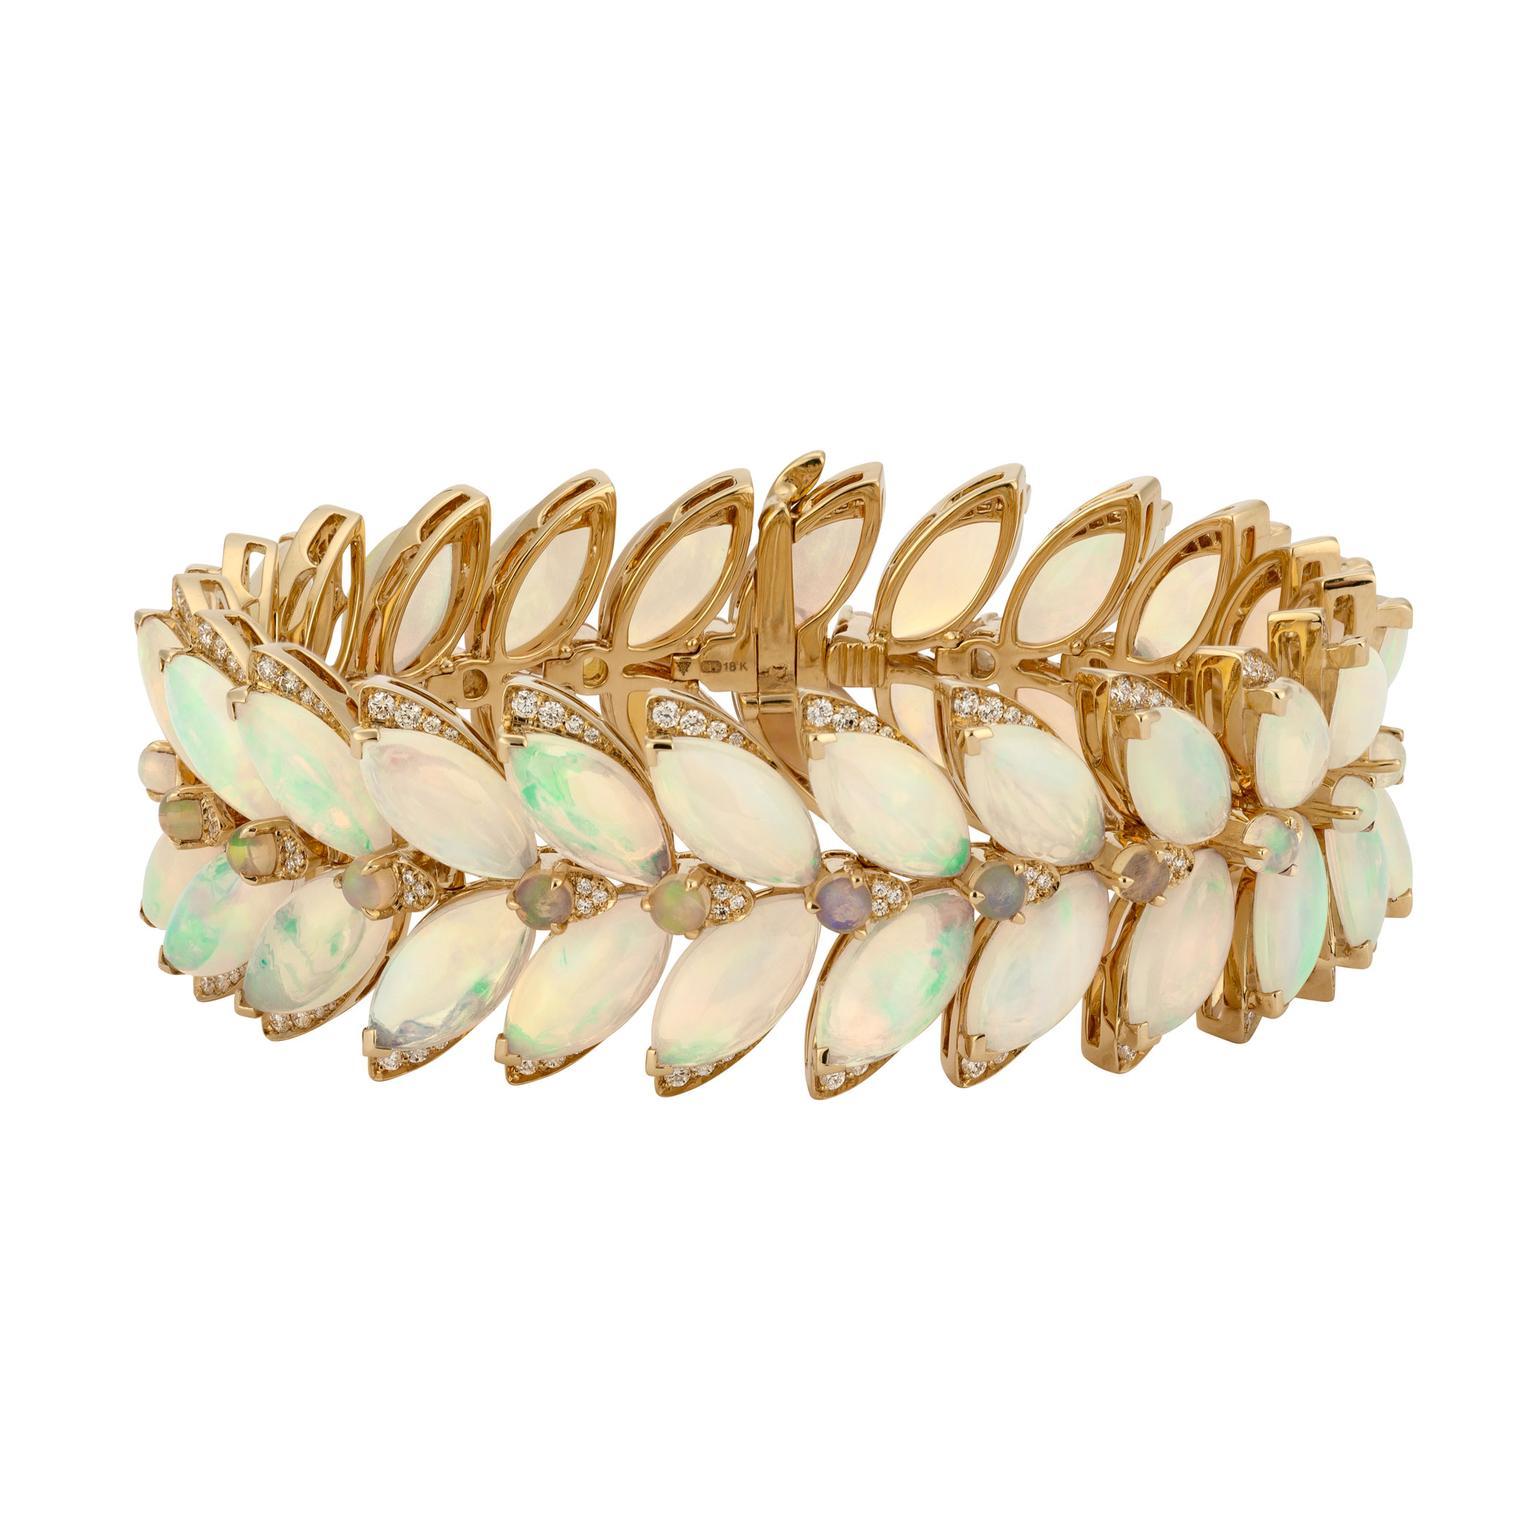 Stephen Webster Magnipheasant feathers bracelet_zoom